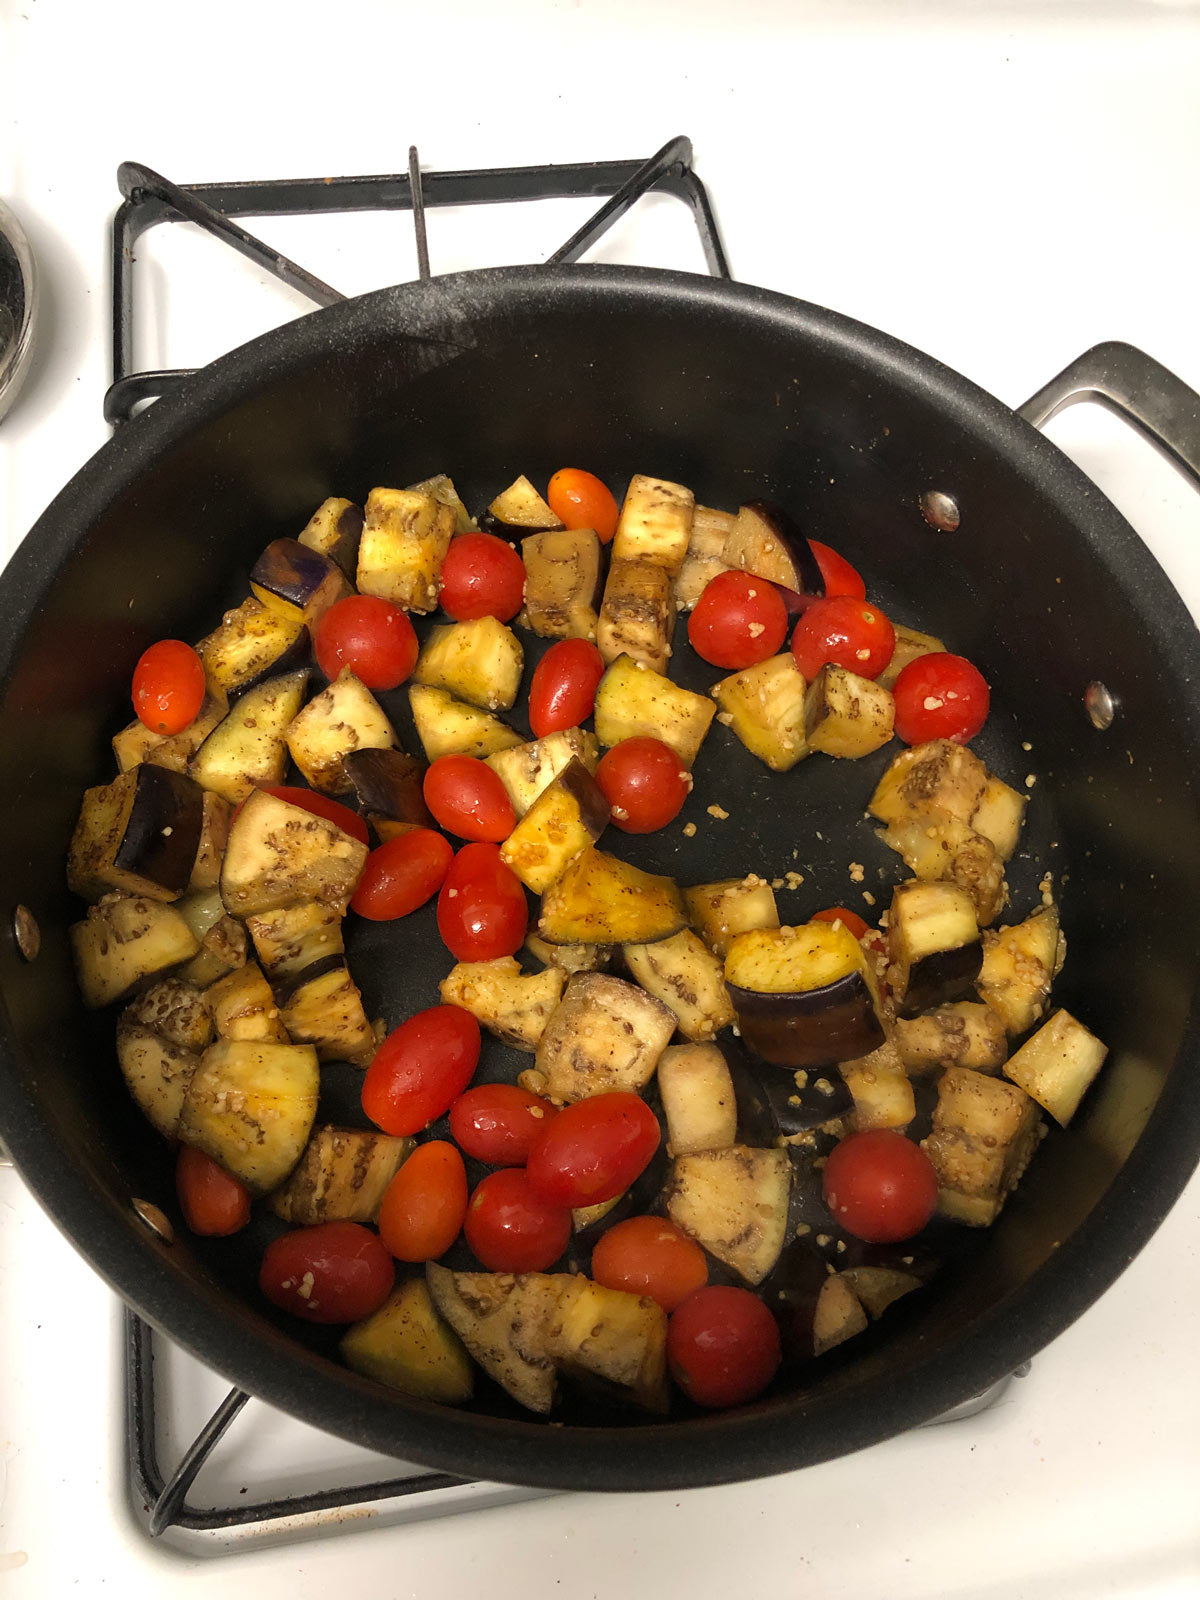 Eggplant and tomatoes in pan